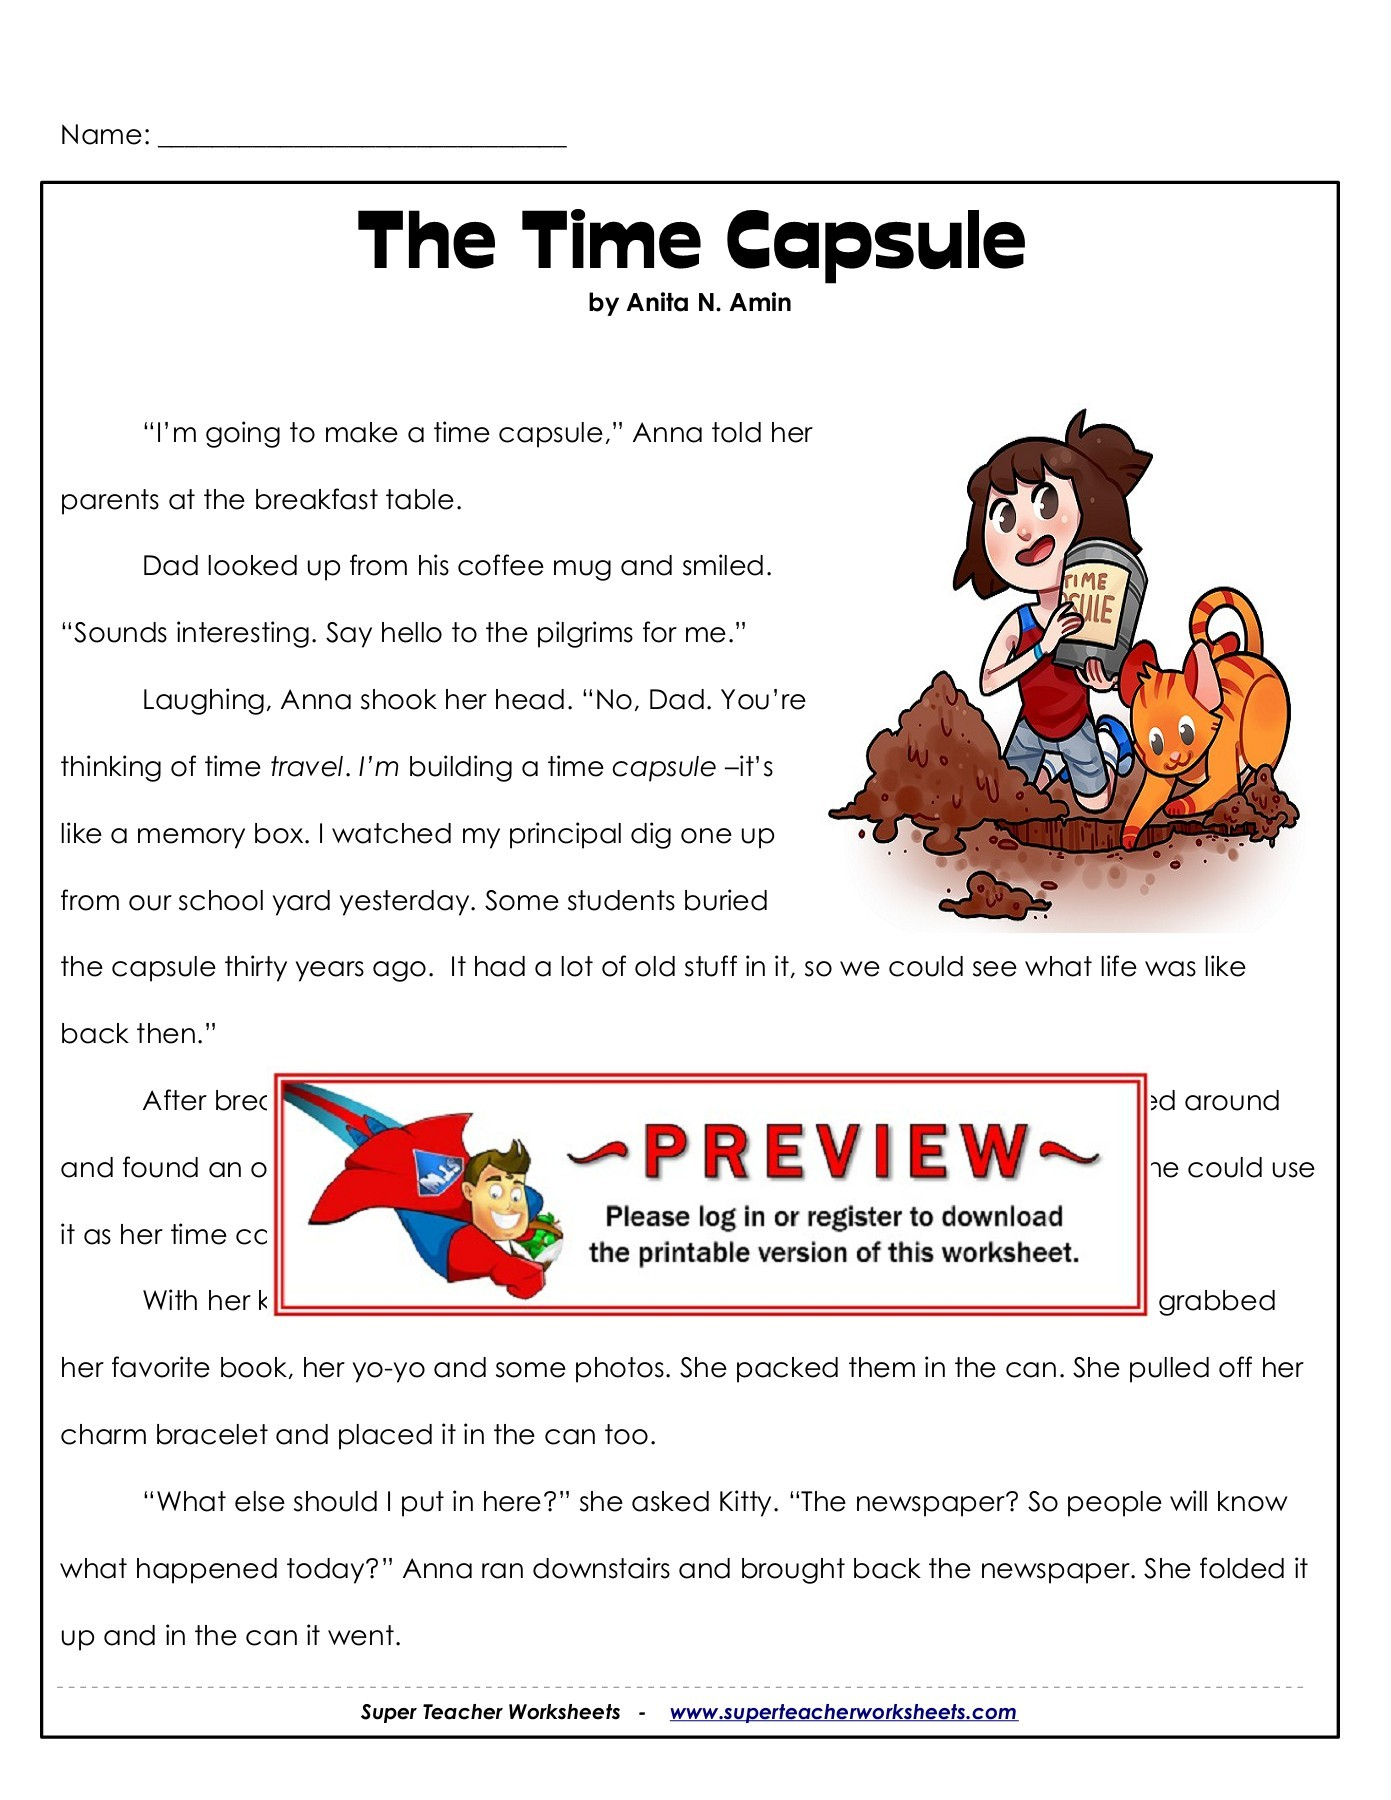 Red 1 Next To Time Capsule The Time Capsule Super Teacher Worksheets